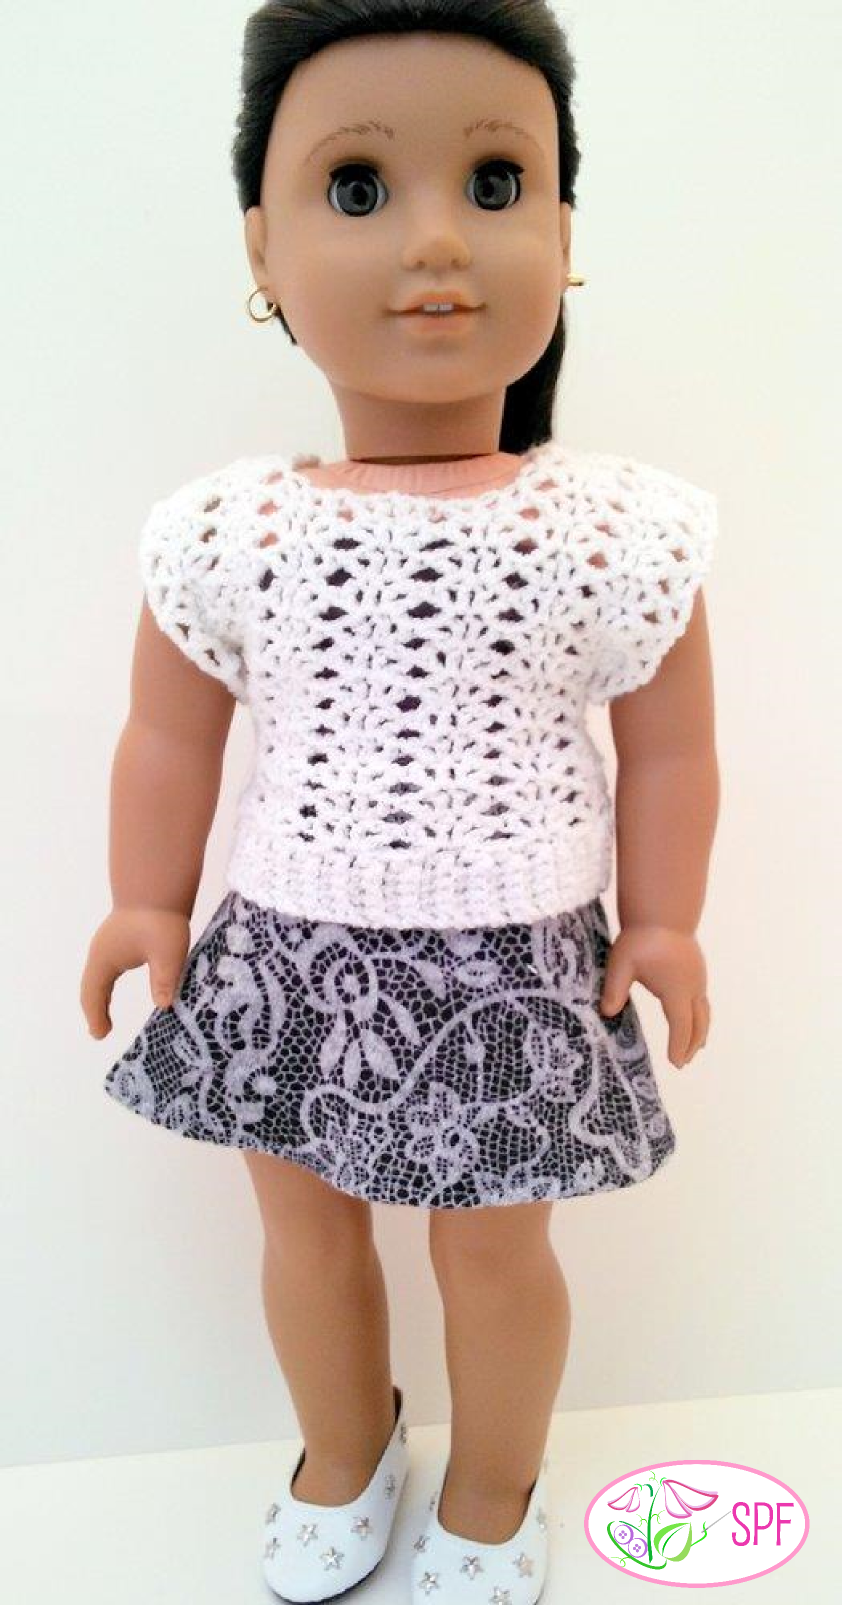 Sweet Pea Fashions Shannon Crocheted Openwork Top Doll Clothes ...